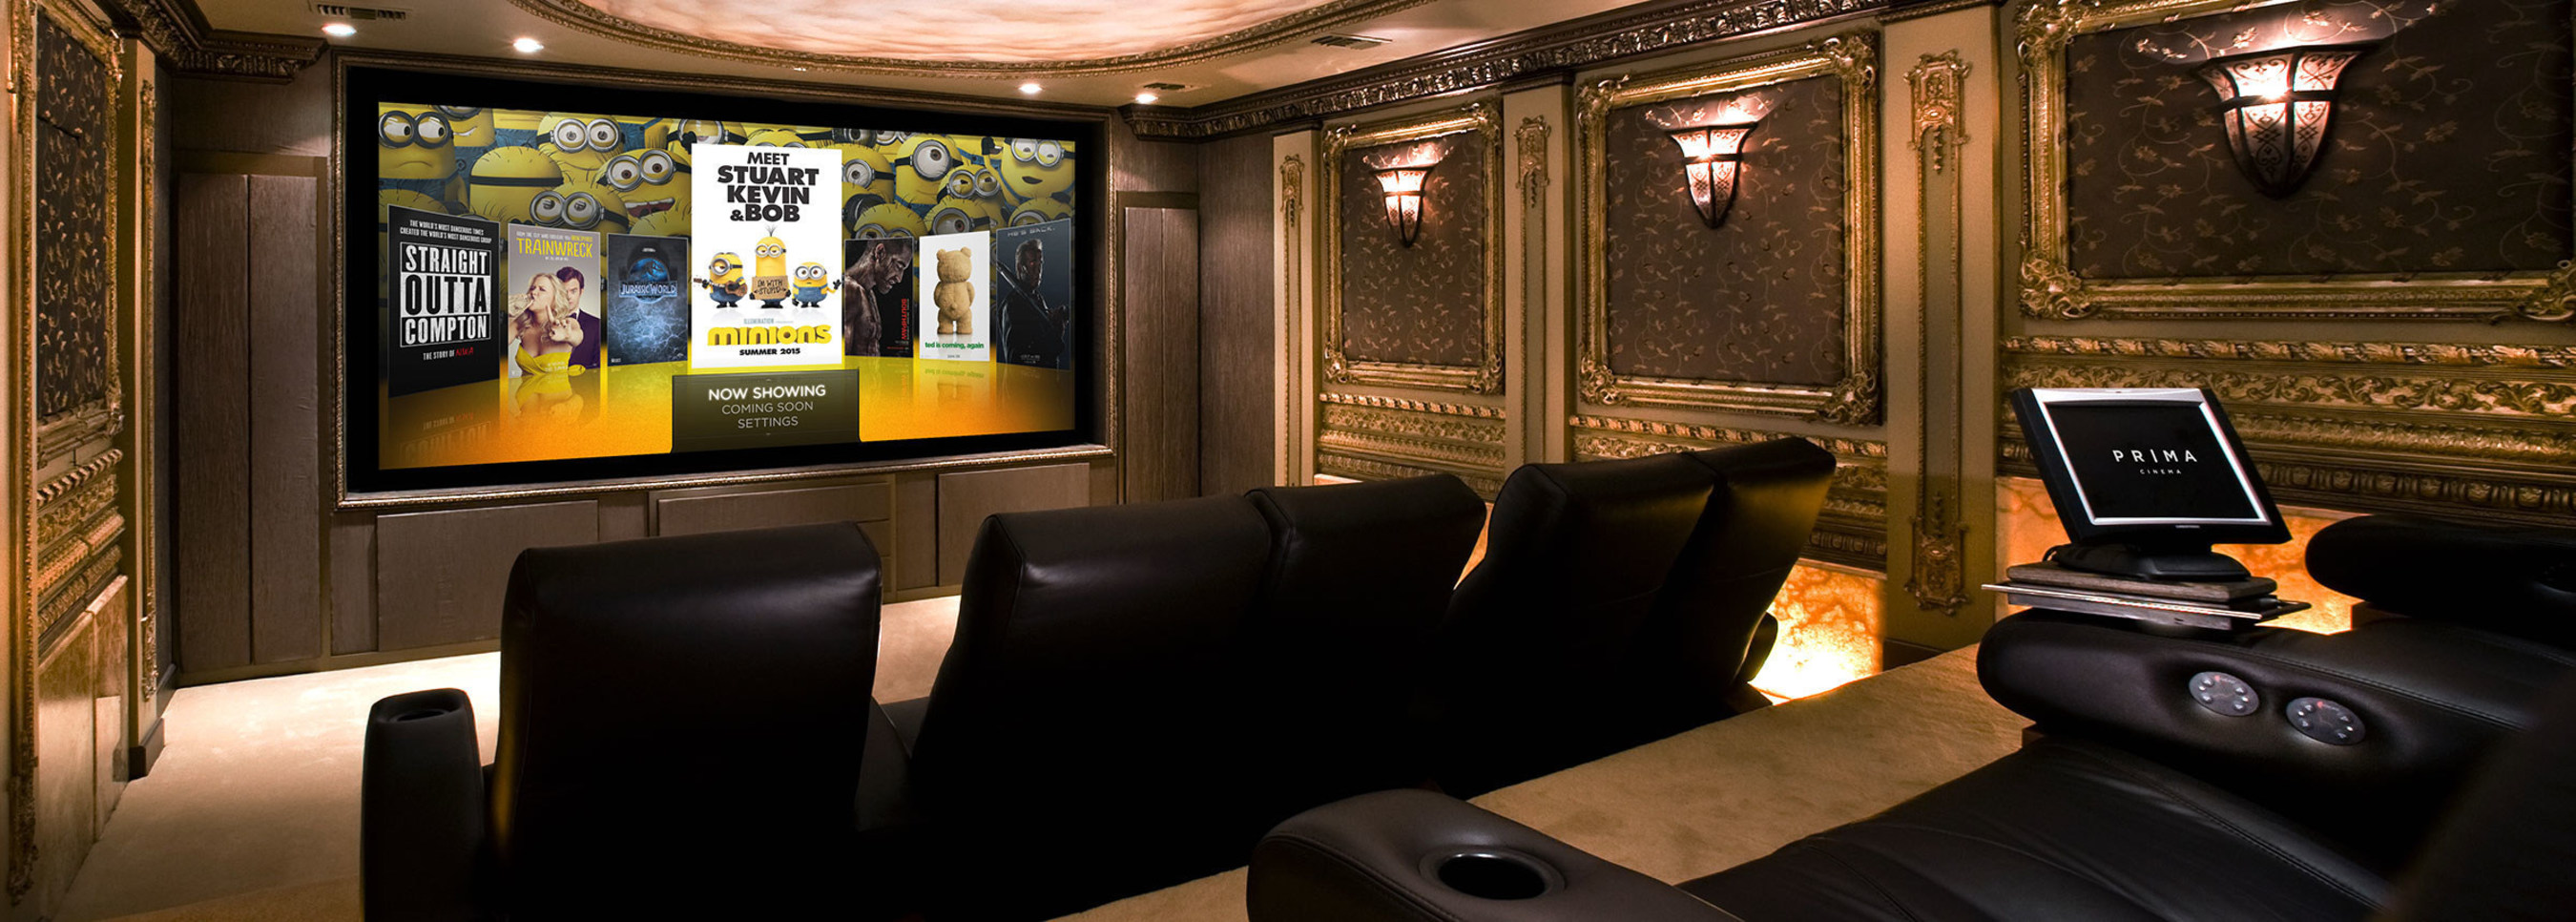 PRIMA Cinema System In Client Home Theater